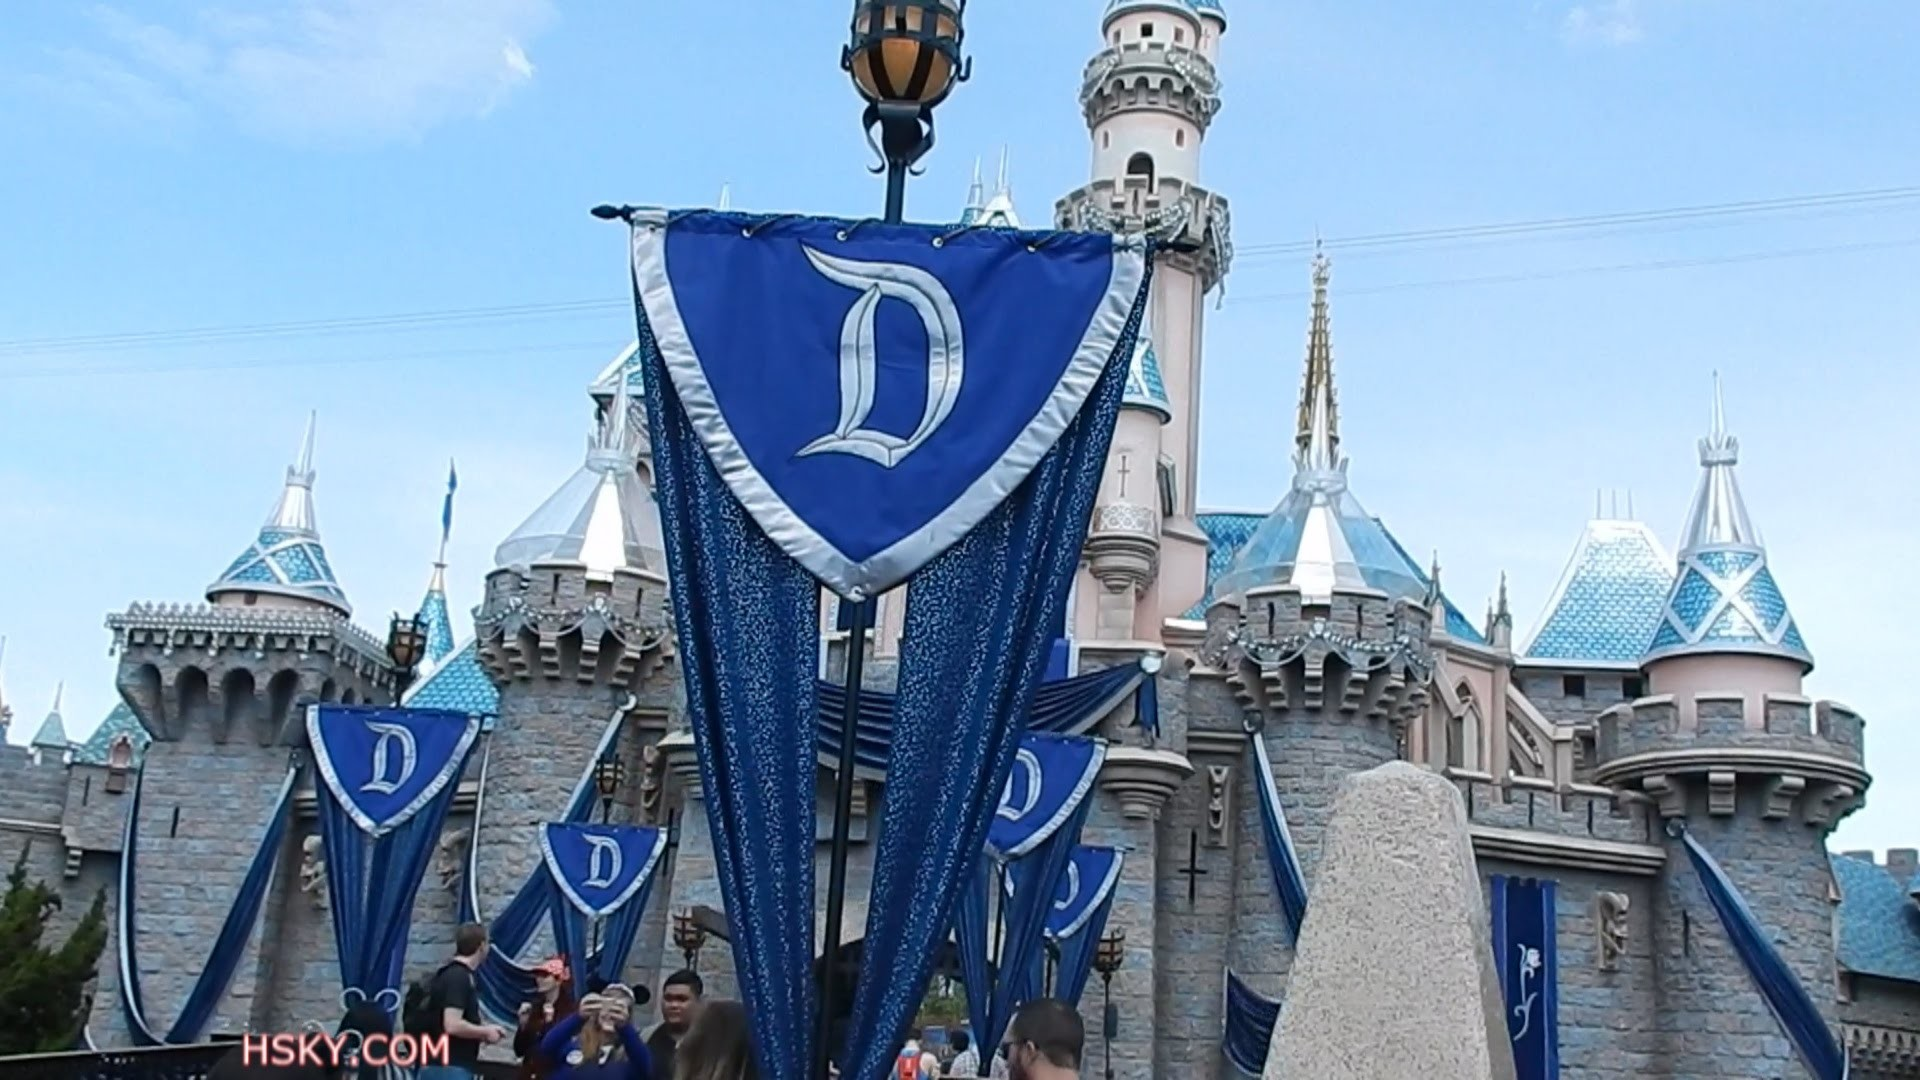 1920x1080 V#343 HSKY Disneyland Diamond Castle Royal Blue 60th Anniversary new look  2015 HD - YouTube